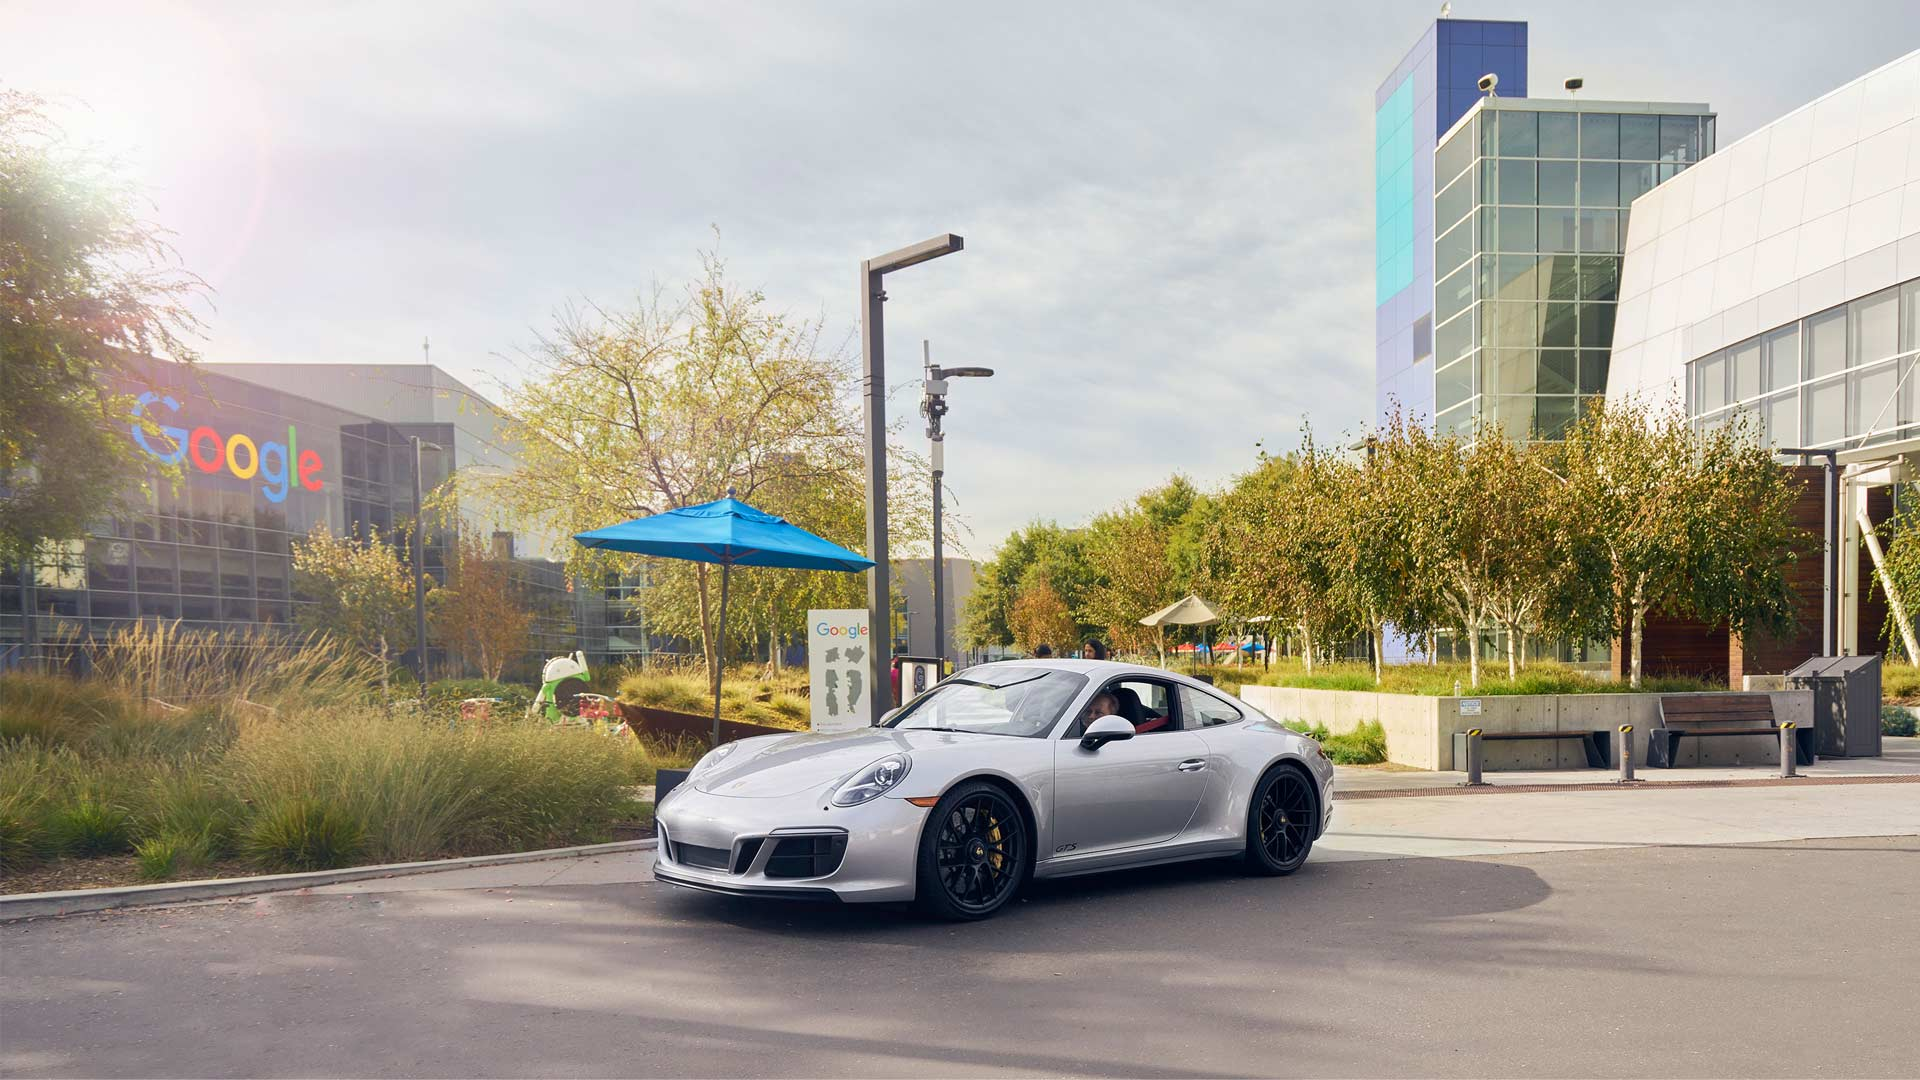 911 Carrera 4 GT at Googleplex, Silicon Valley, Porsche-Turo-peer-to-peer-car-sharing